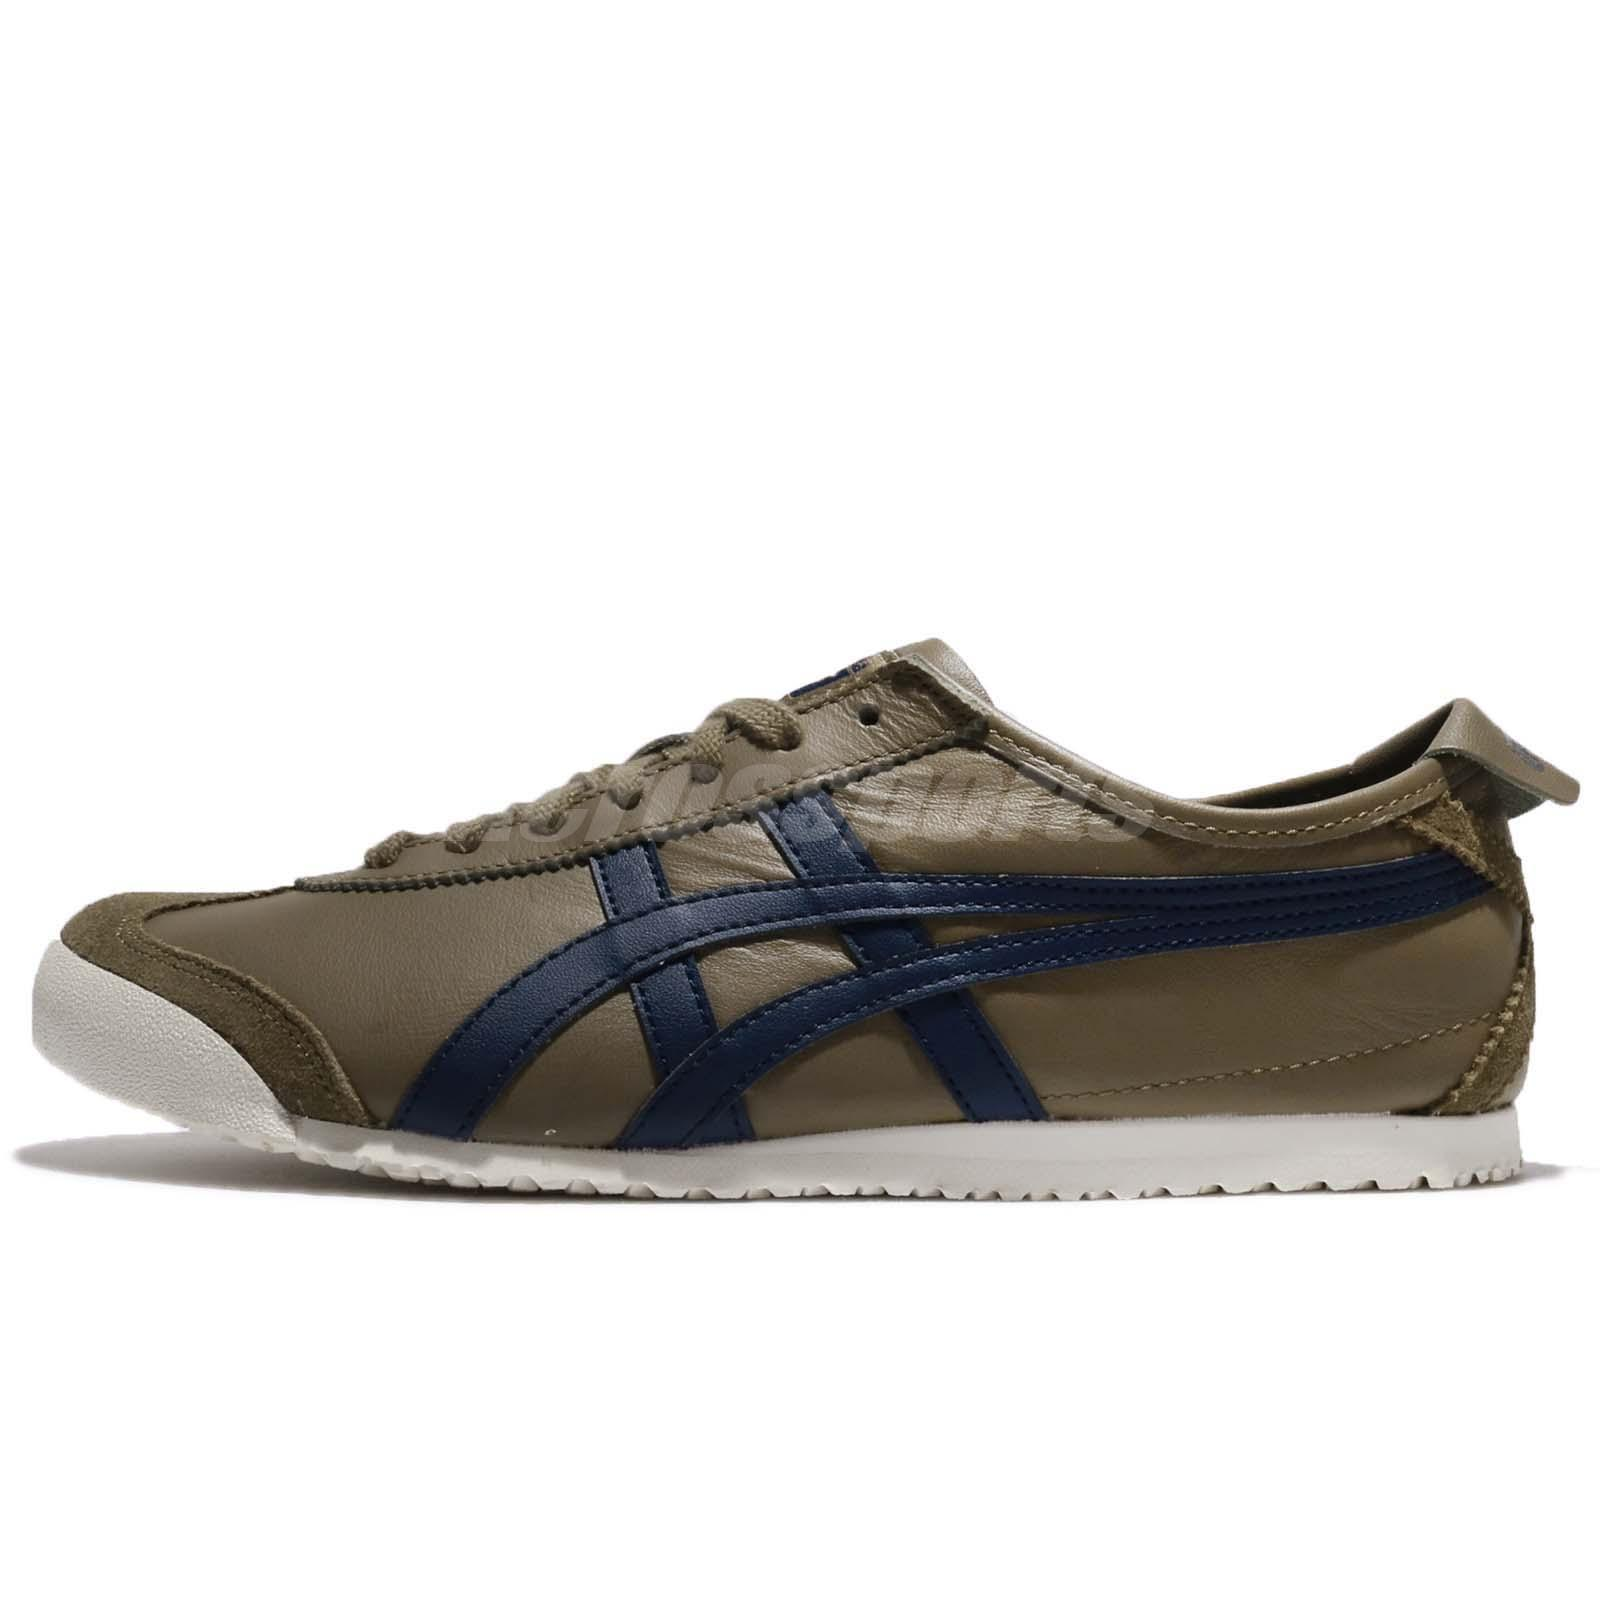 new product b5964 3ec9d Details about Asics Onitsuka Tiger Mexico 66 Martini Olive Peacoat Leather  Men Shoe D4J2L-8658